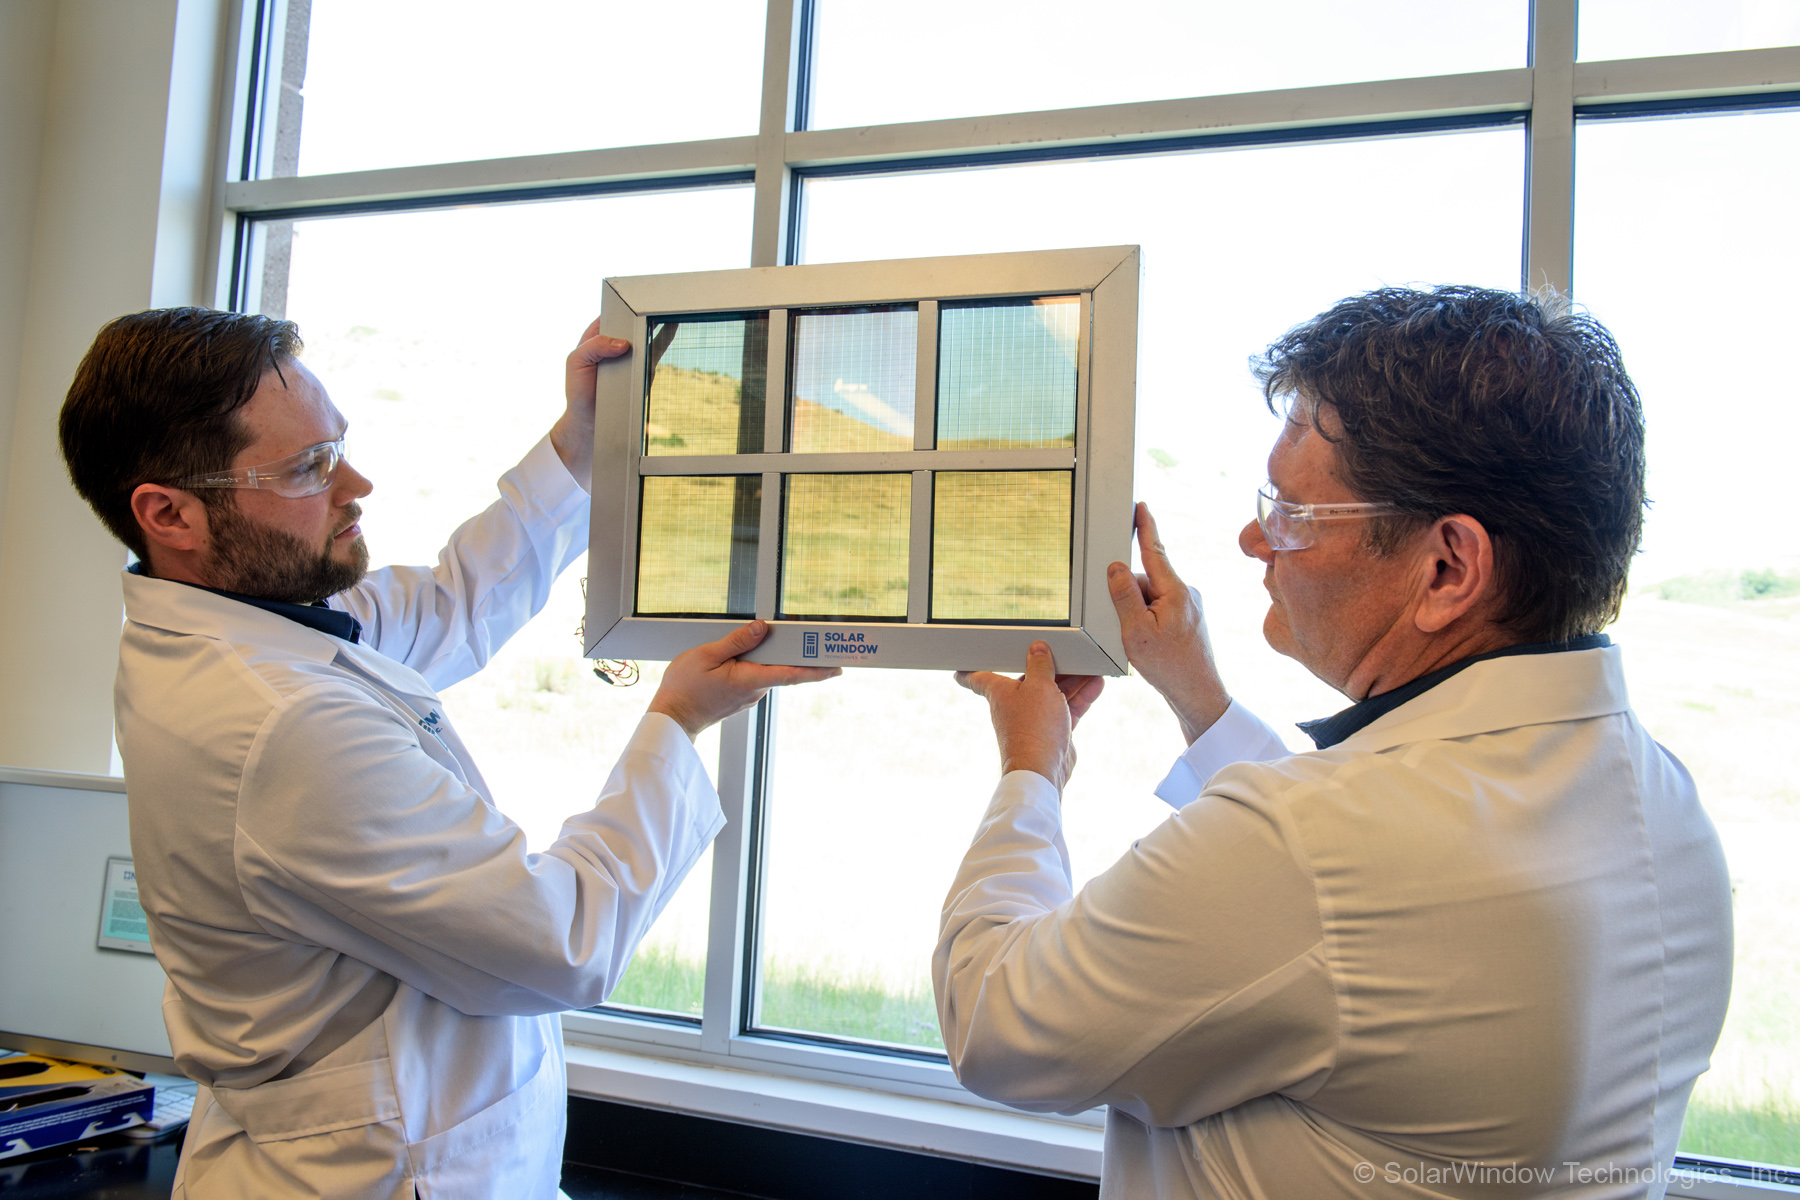 <p>Windows that serveas solar panels could offsetmore than 30 percent of a building's energy usagewhen installed on alarge glass office tower, according toMaryland-based SolarWindow Technologies. The company is developing the technology in partnership with the NationalRenewable Energy Laboratory in Golden. </p>